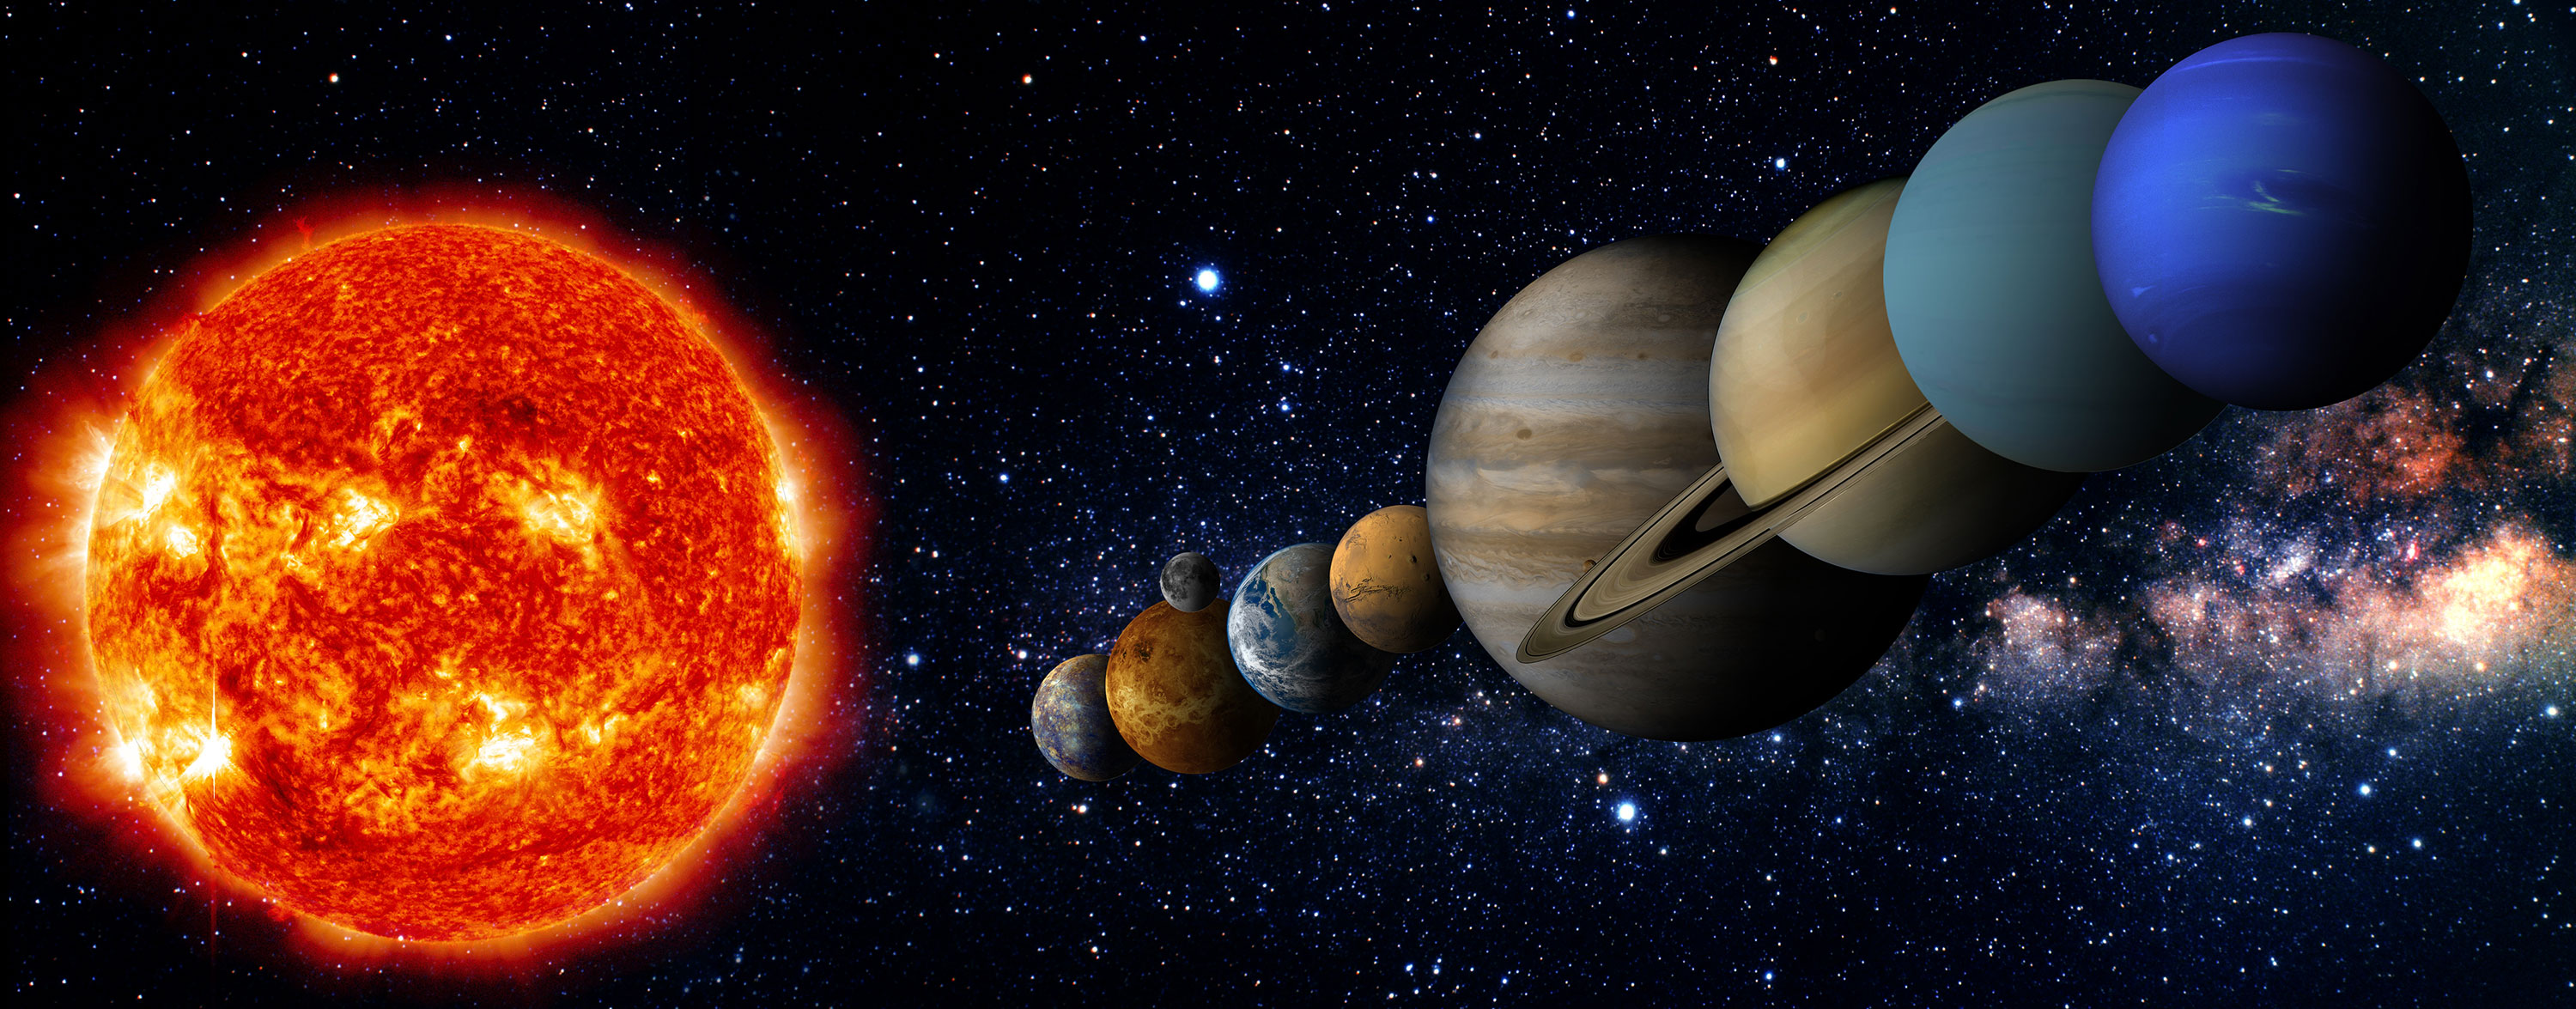 Composition Of The Solar System